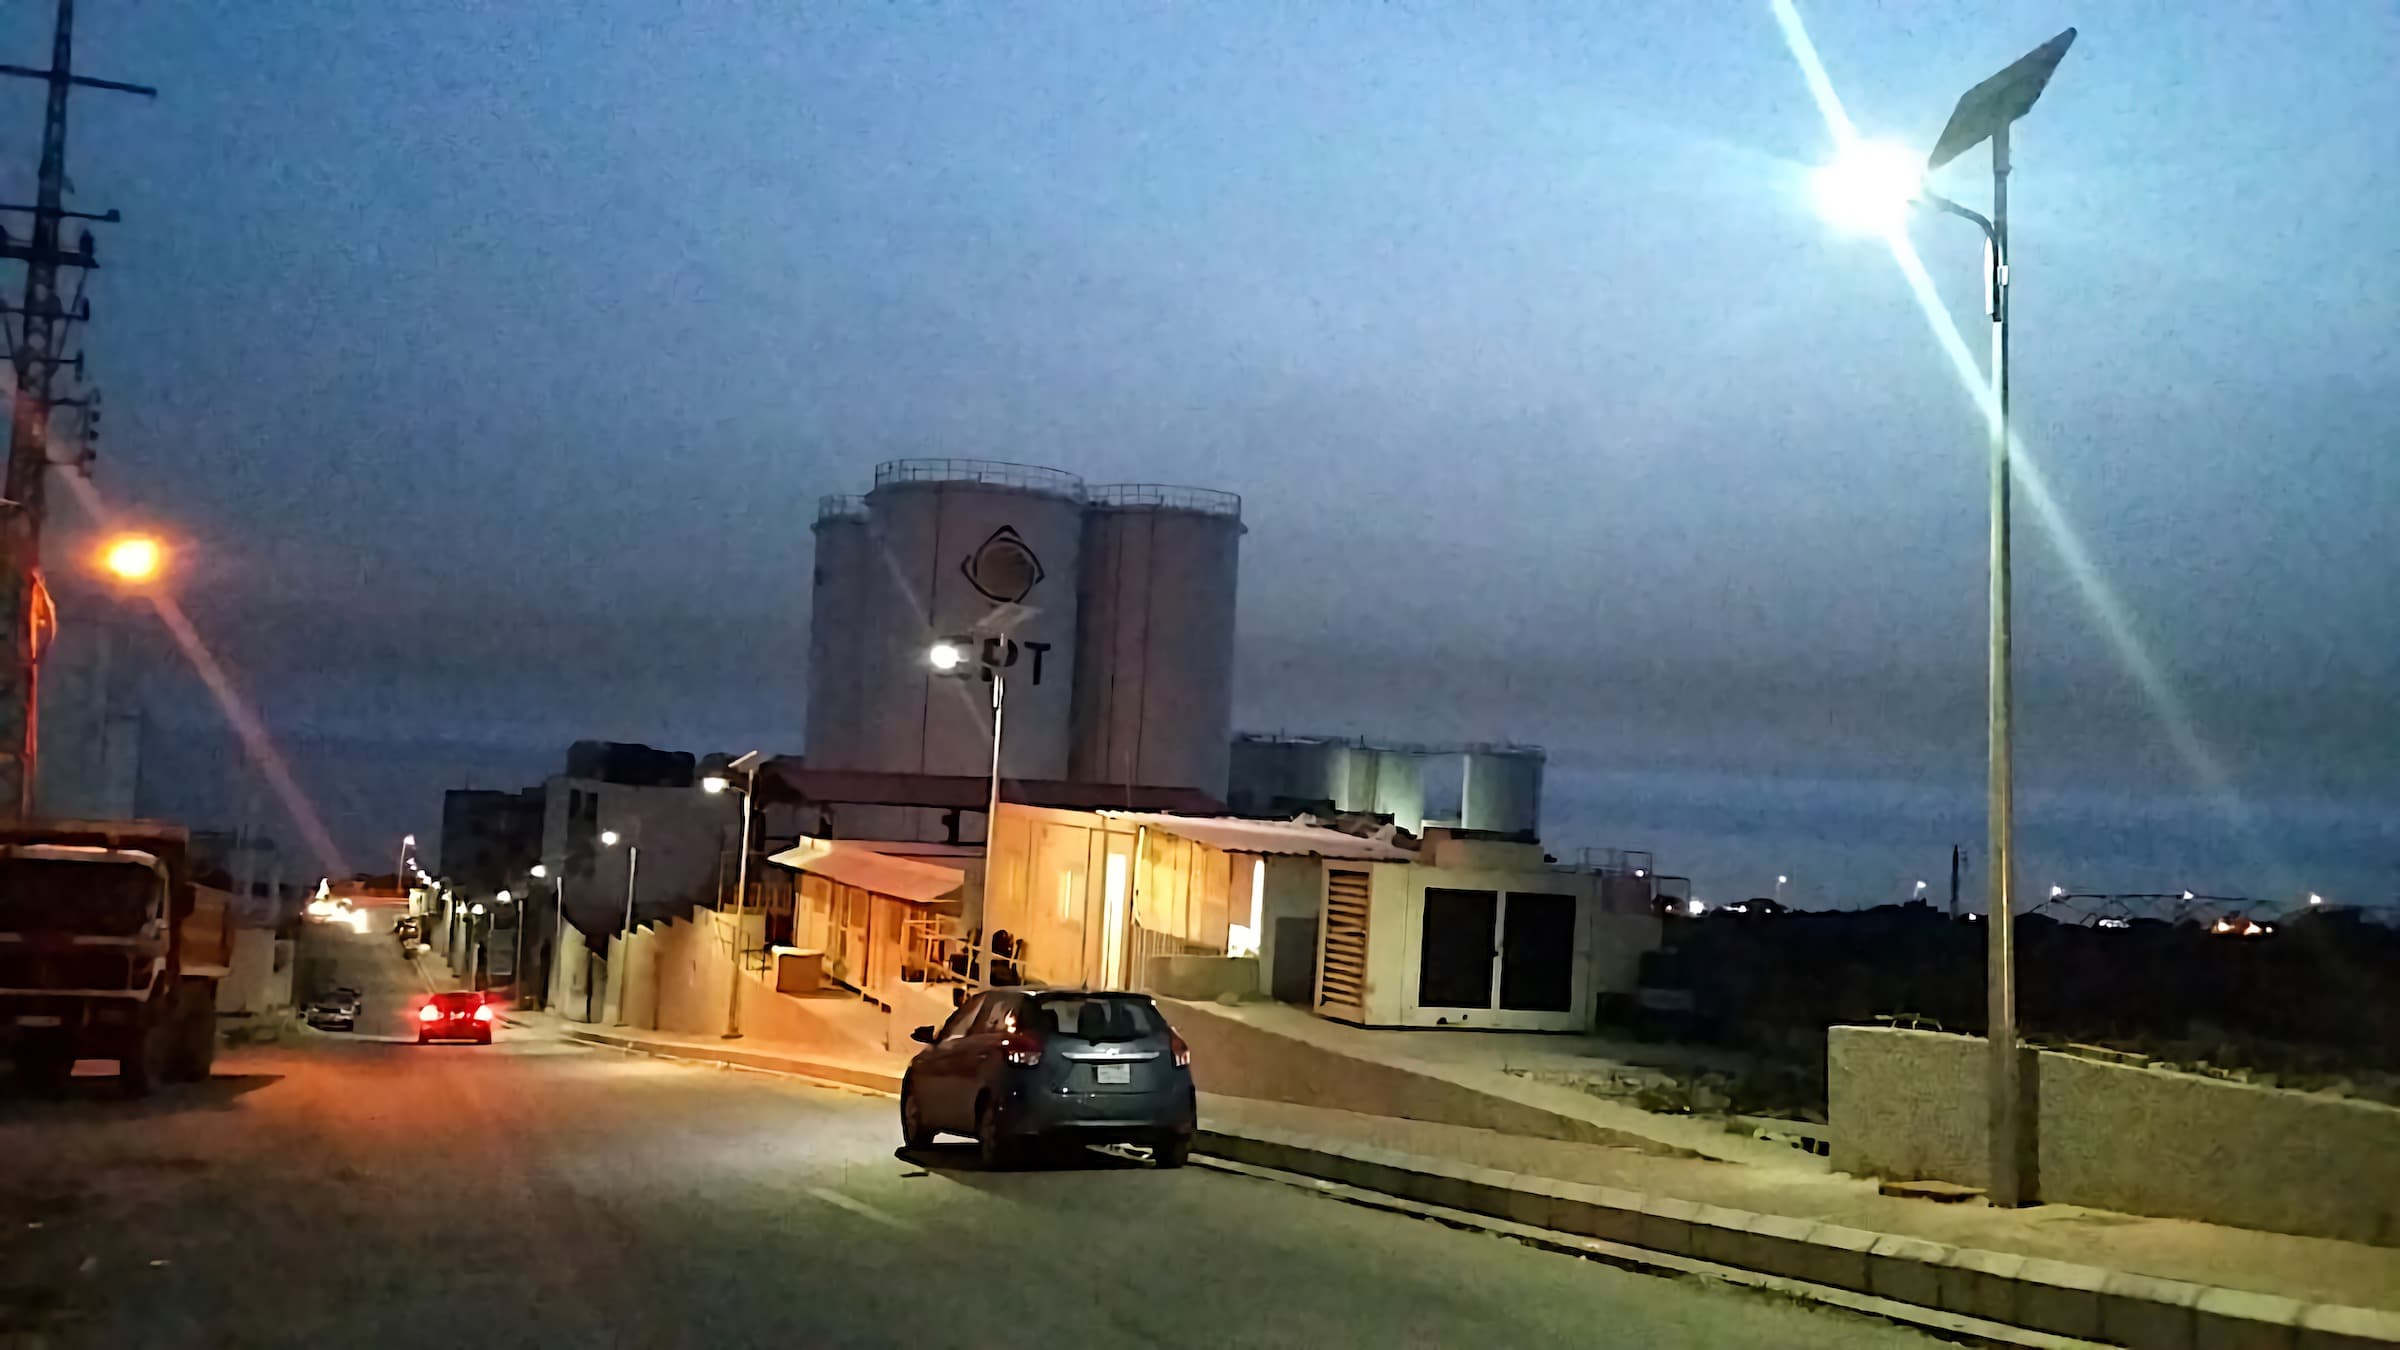 Success story of 35 watts solar street light project installation in Lebanon which offers supper quality of light to the streets and make it more safe driving area in the evening